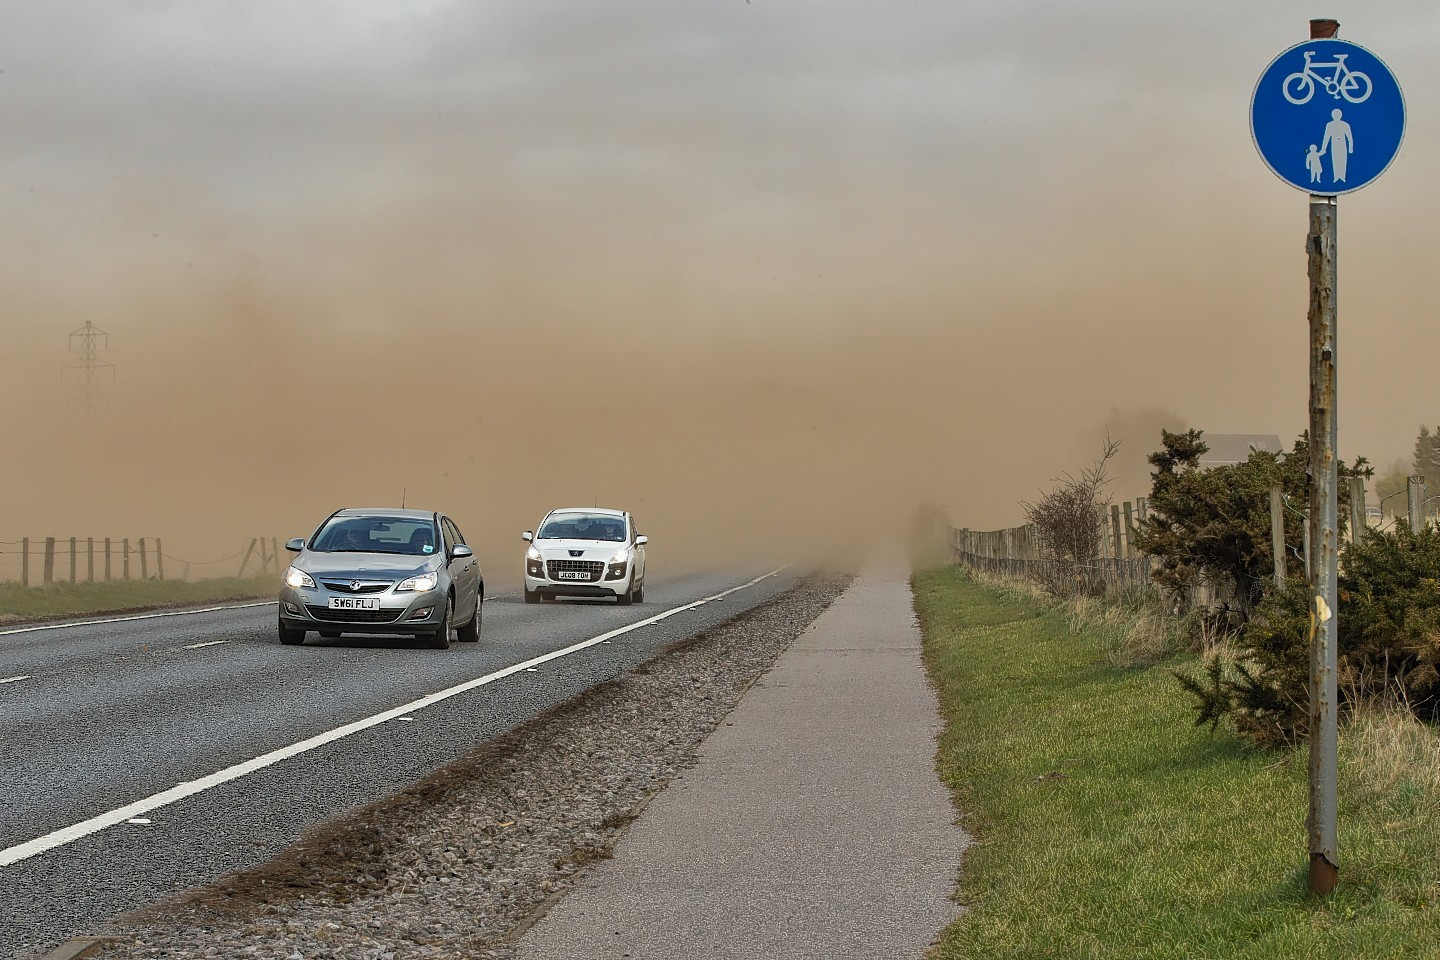 This is the A96 Forres to Elgin main trunk road approximately half a mile east of Forres